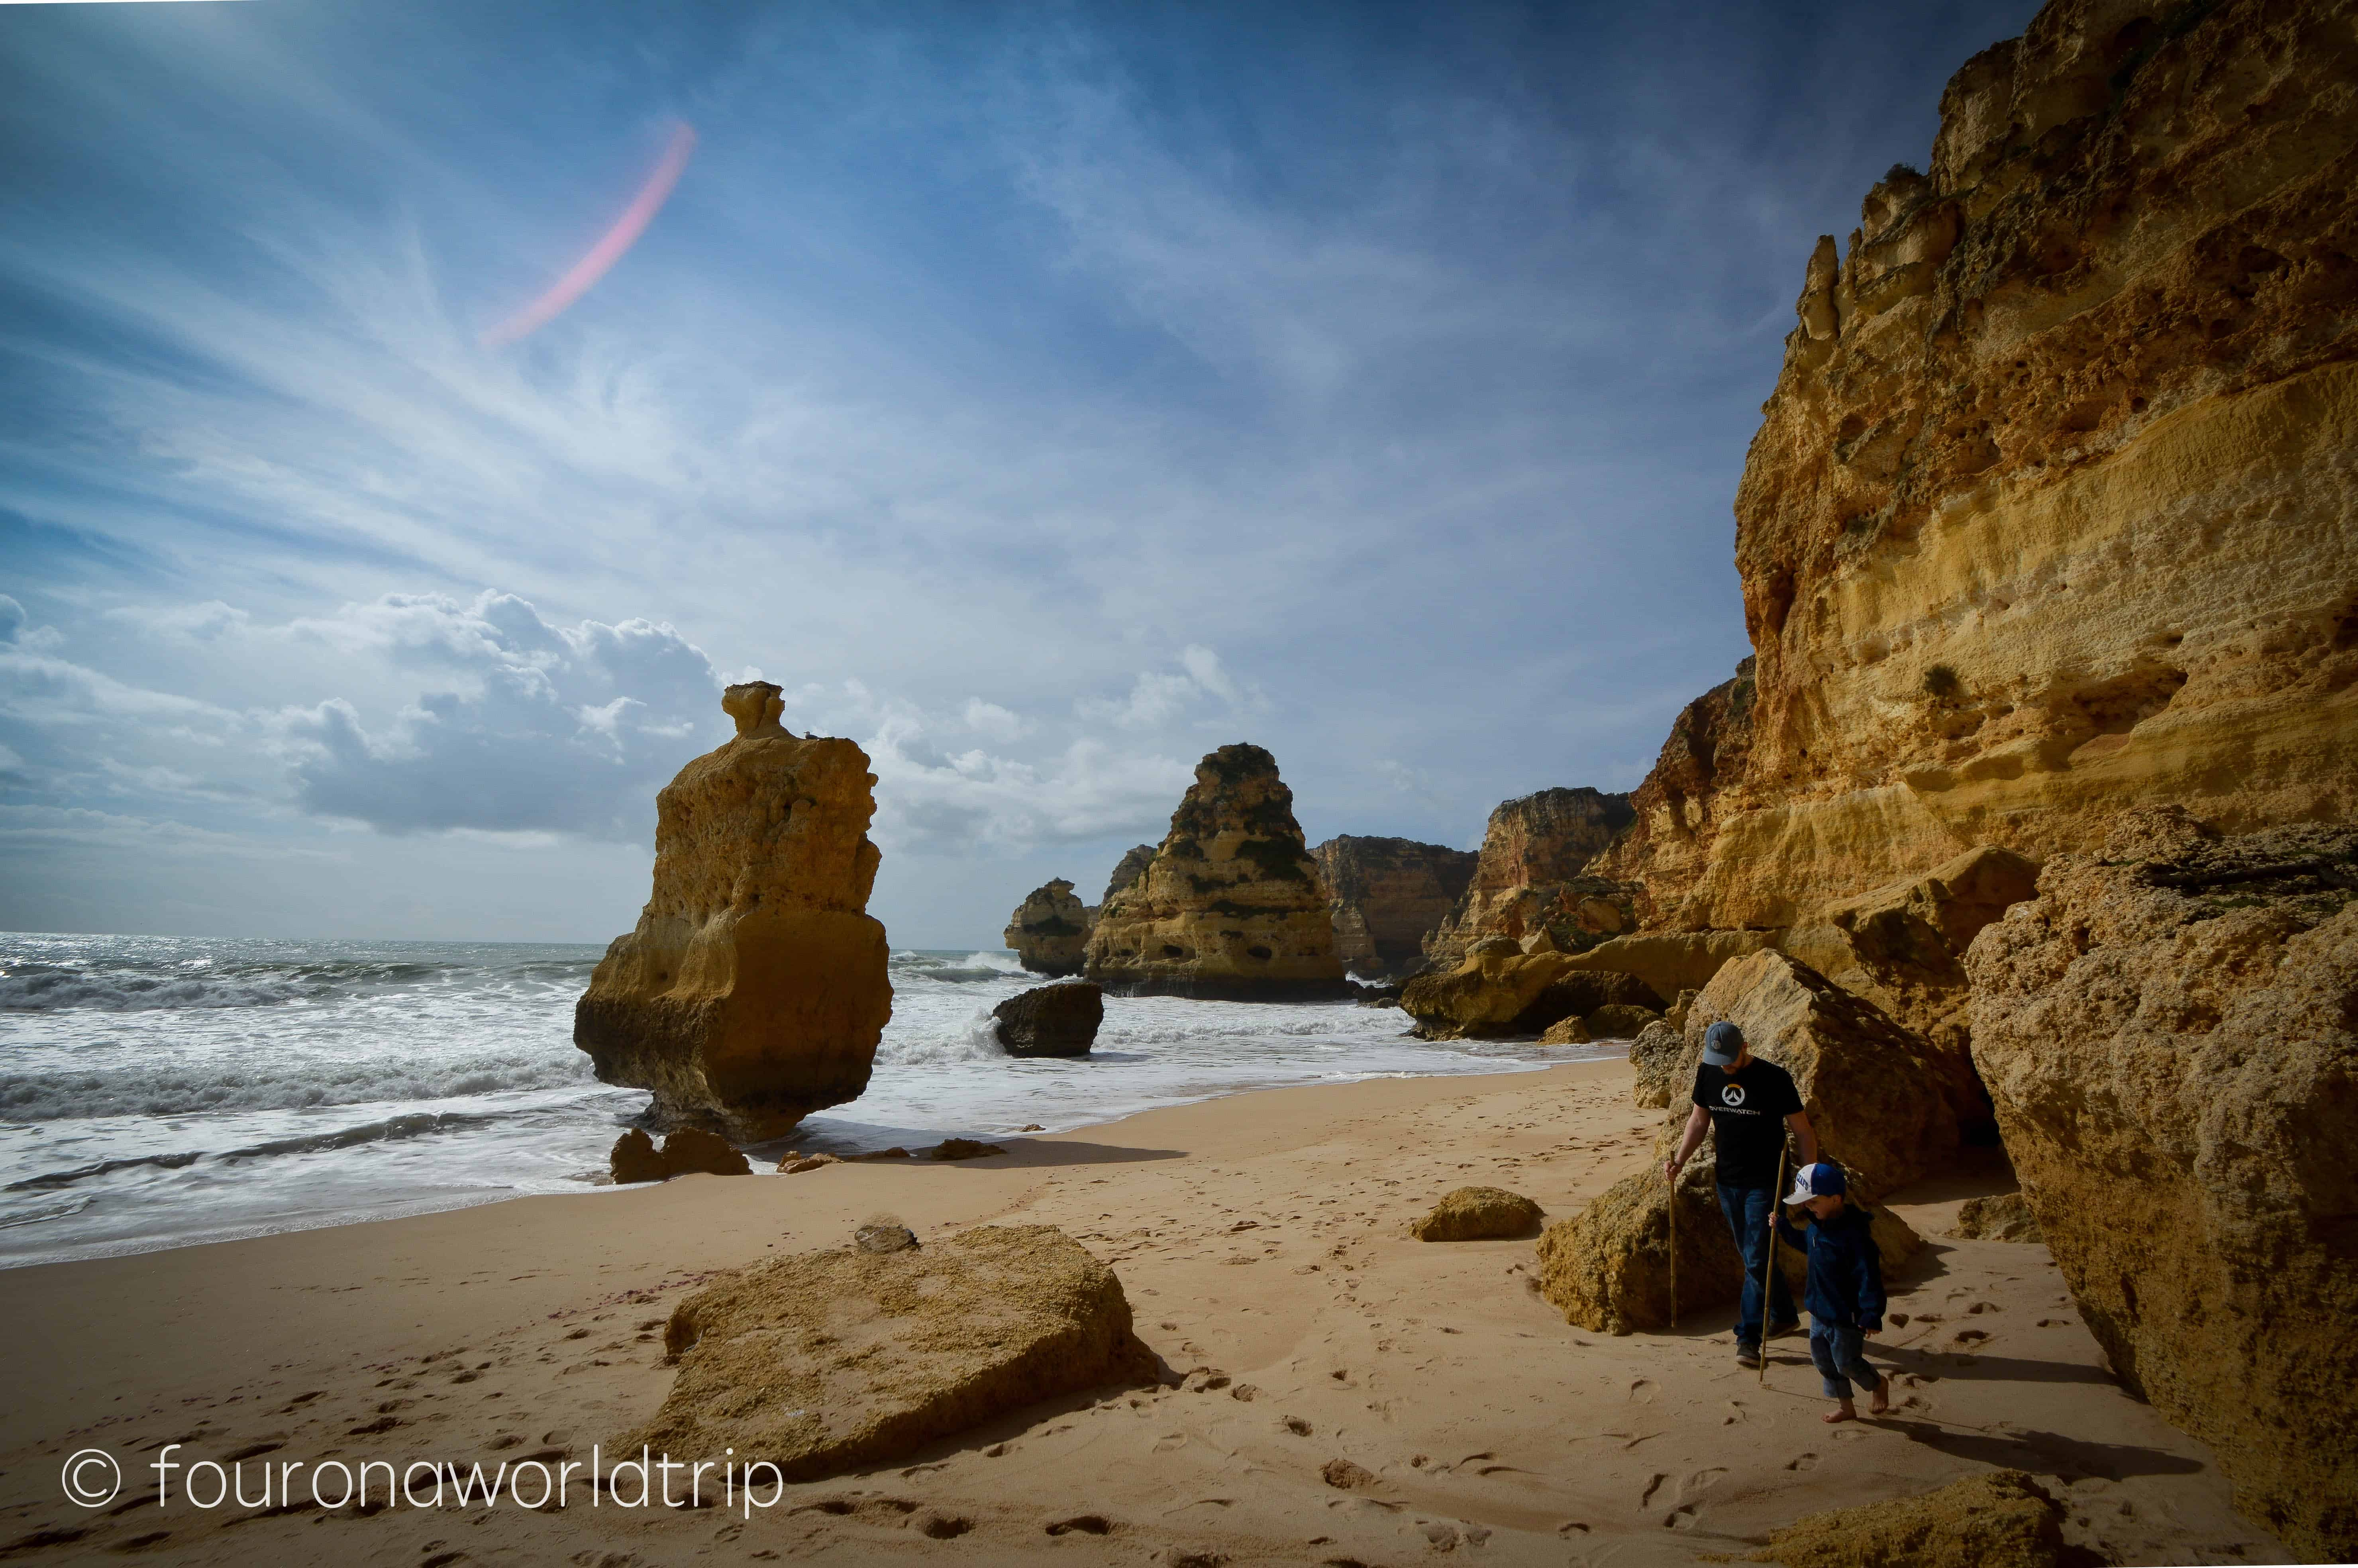 Exploring Praia de Marinha – the most famous rock formations in Algarve - Algarve in winter assures empty beaches and sunshine